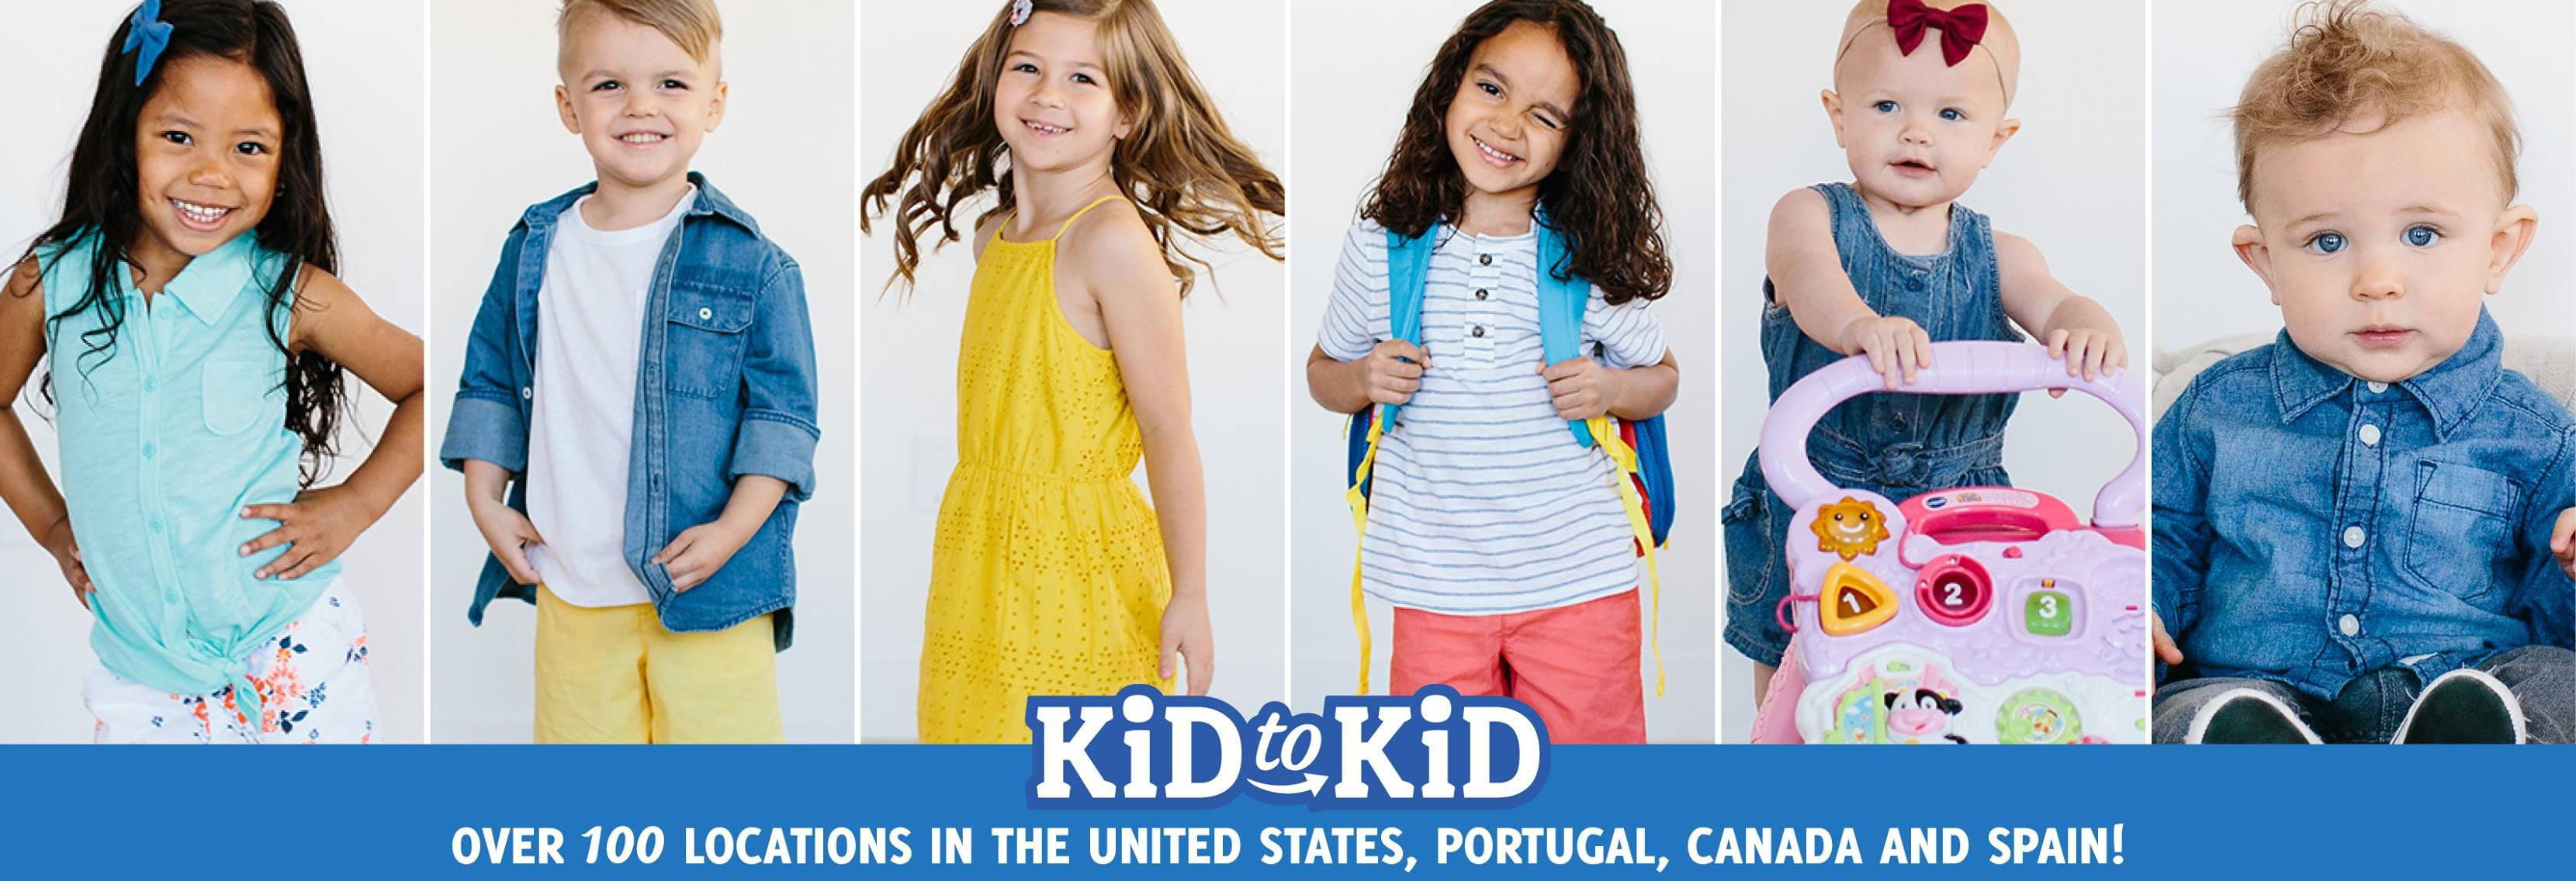 Kid to Kid in Kent, WA banner image - the best of kids' resale - get paid for kids' stuff